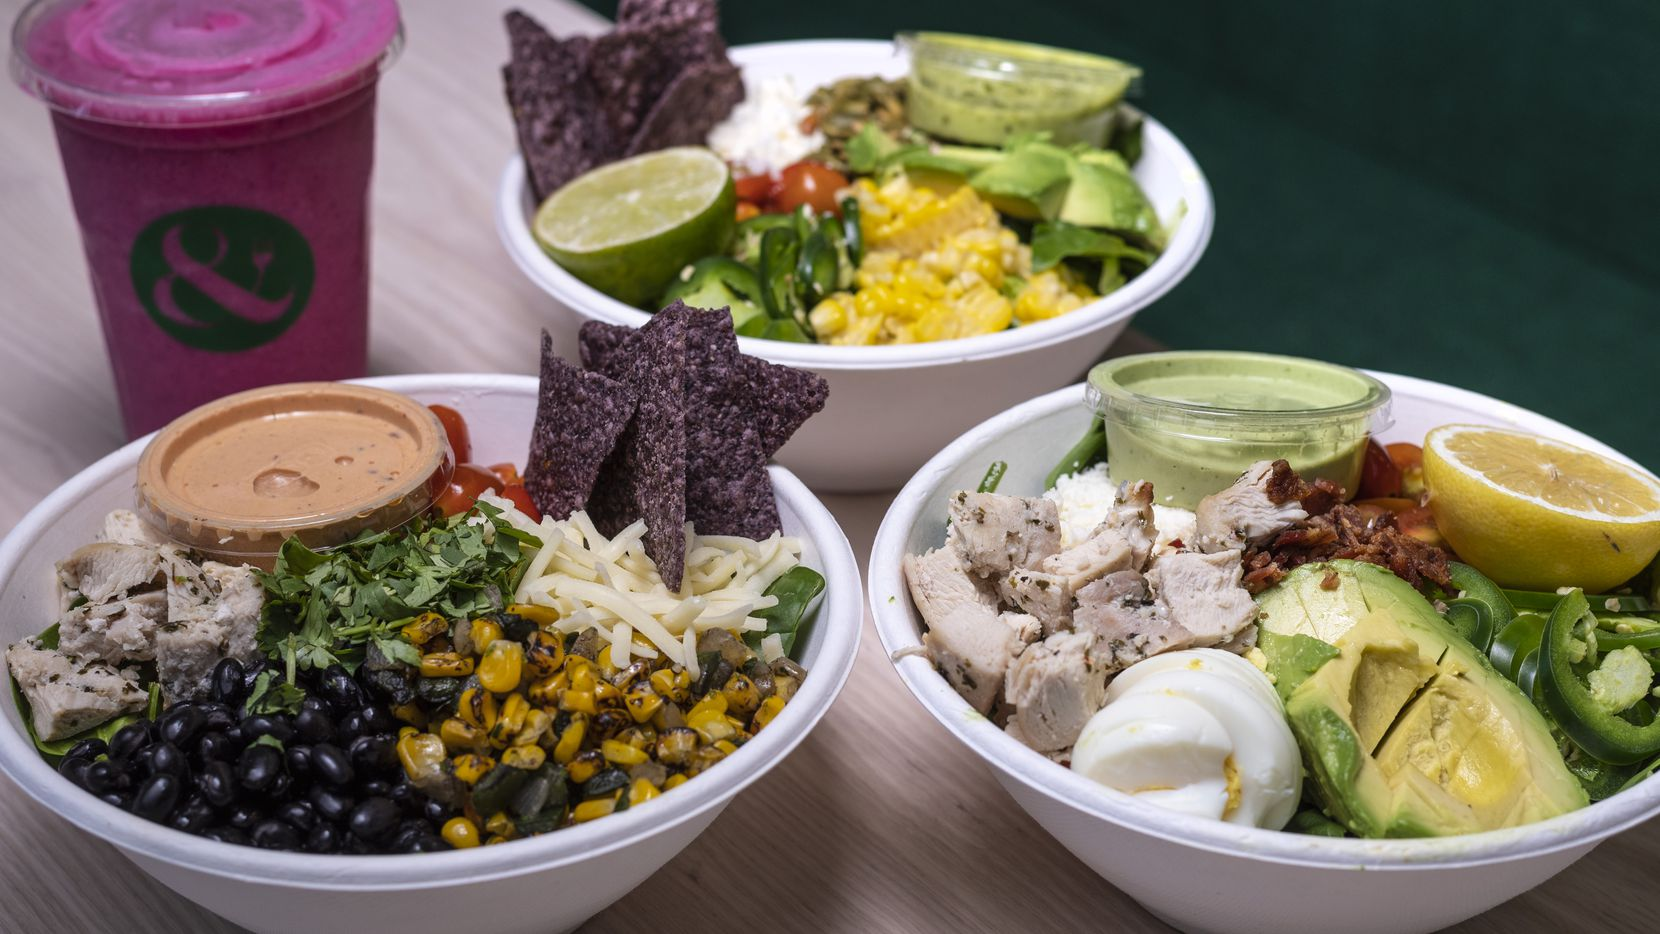 Crisp & Green is a new franchise from Minnesota. Its first out-of-state restaurant is in Dallas, across the street from Southern Methodist University and near Snider Plaza.